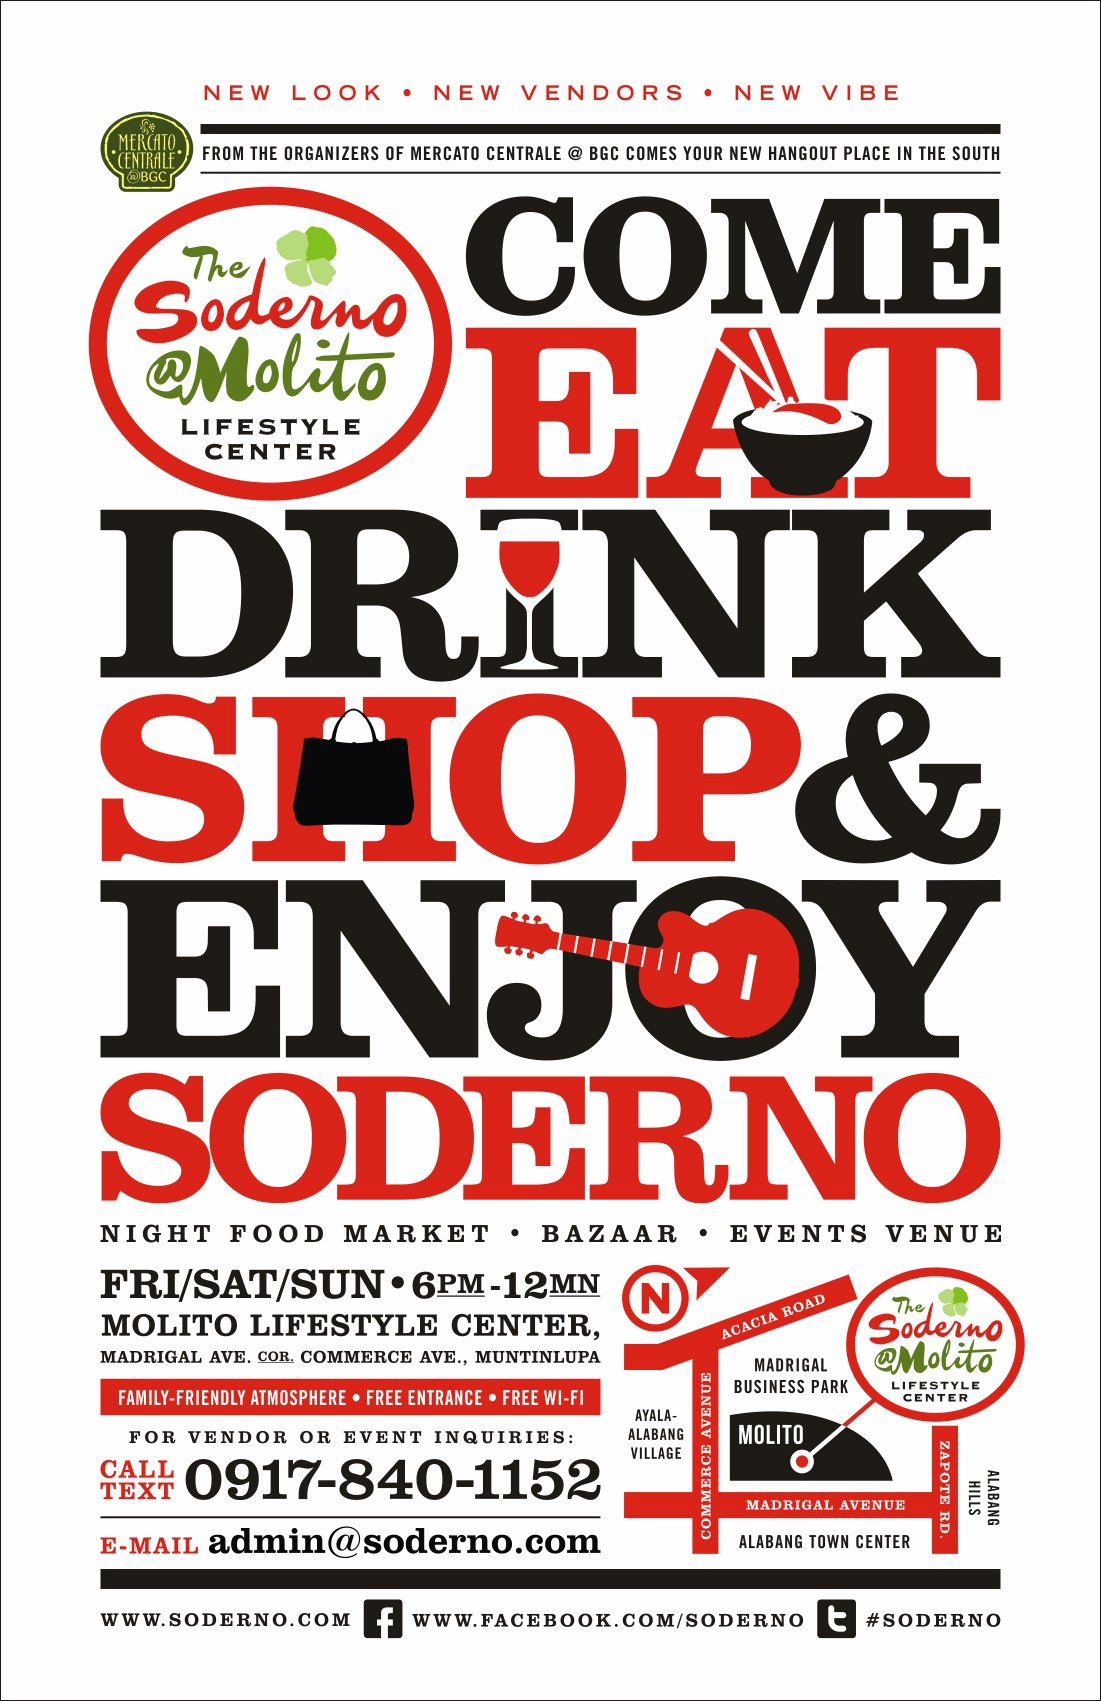 Soderno @ Molito Lifestyle Center 2012